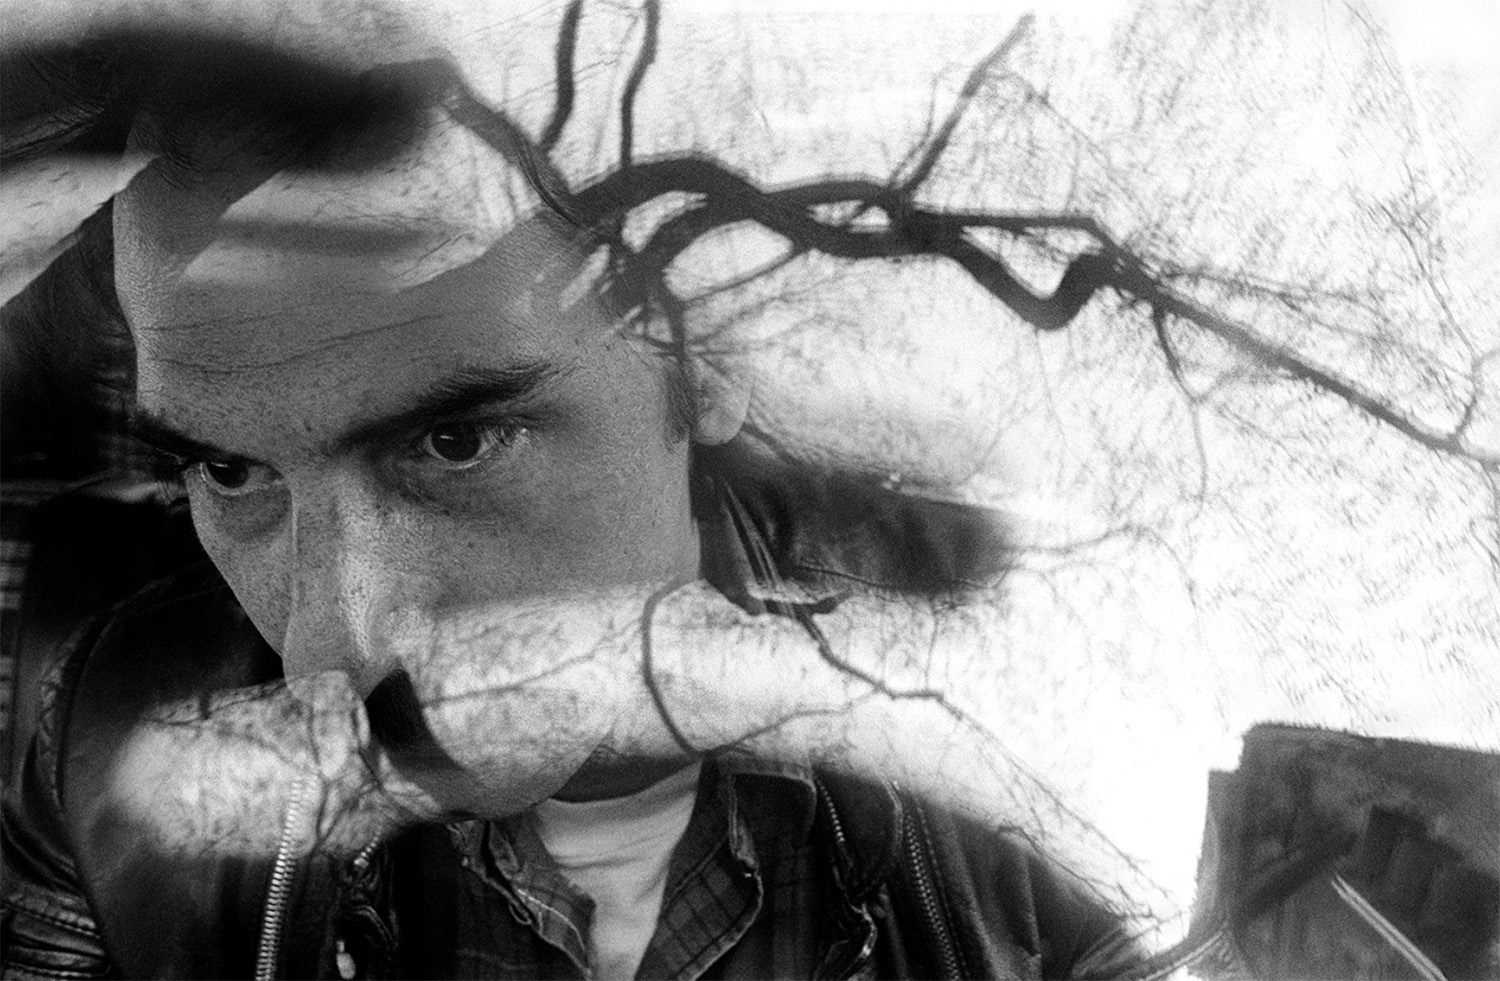 John coming down from crack by eugene richards